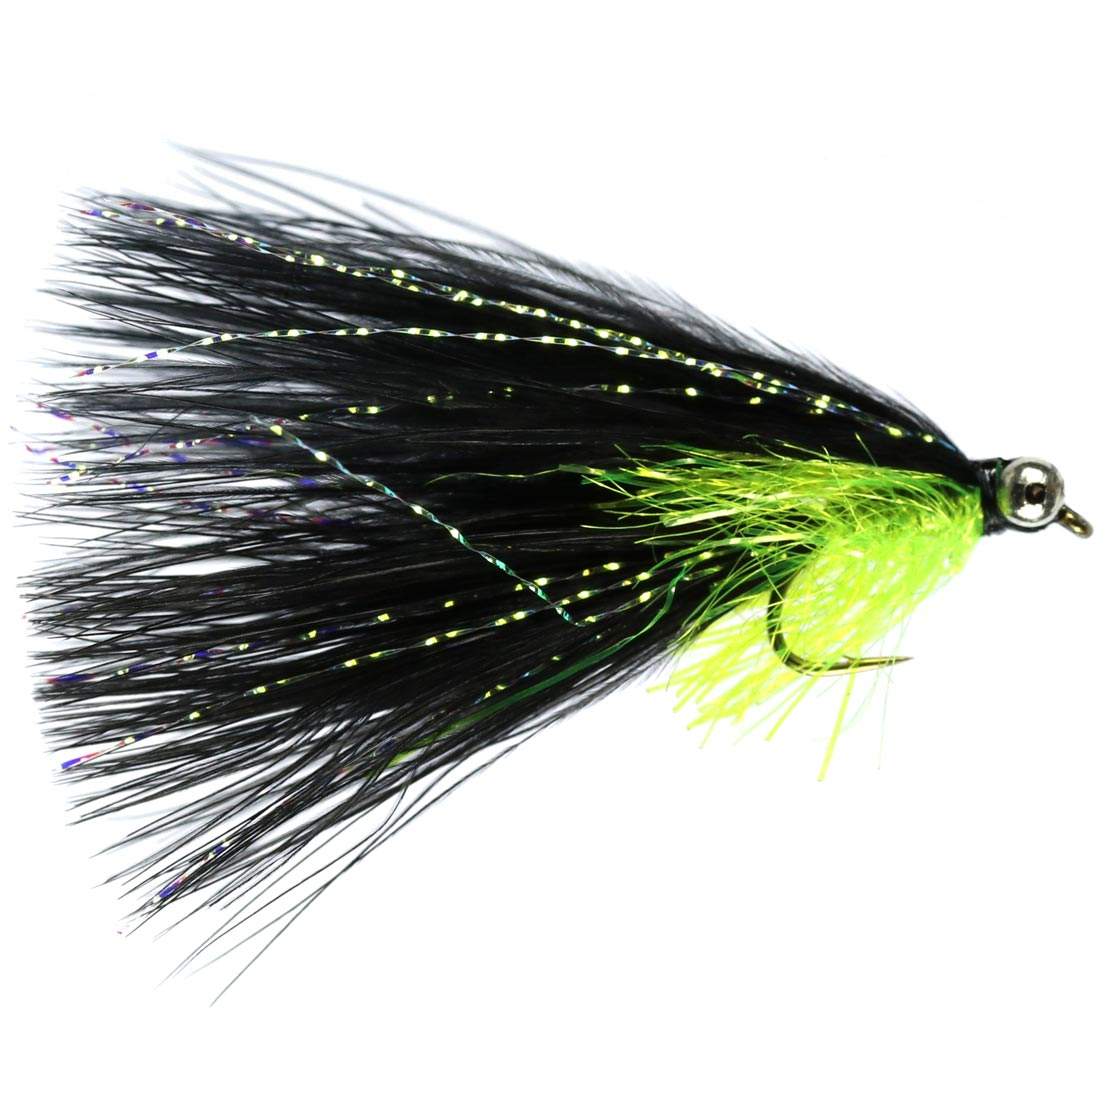 Black cats Whisker (Size 10)